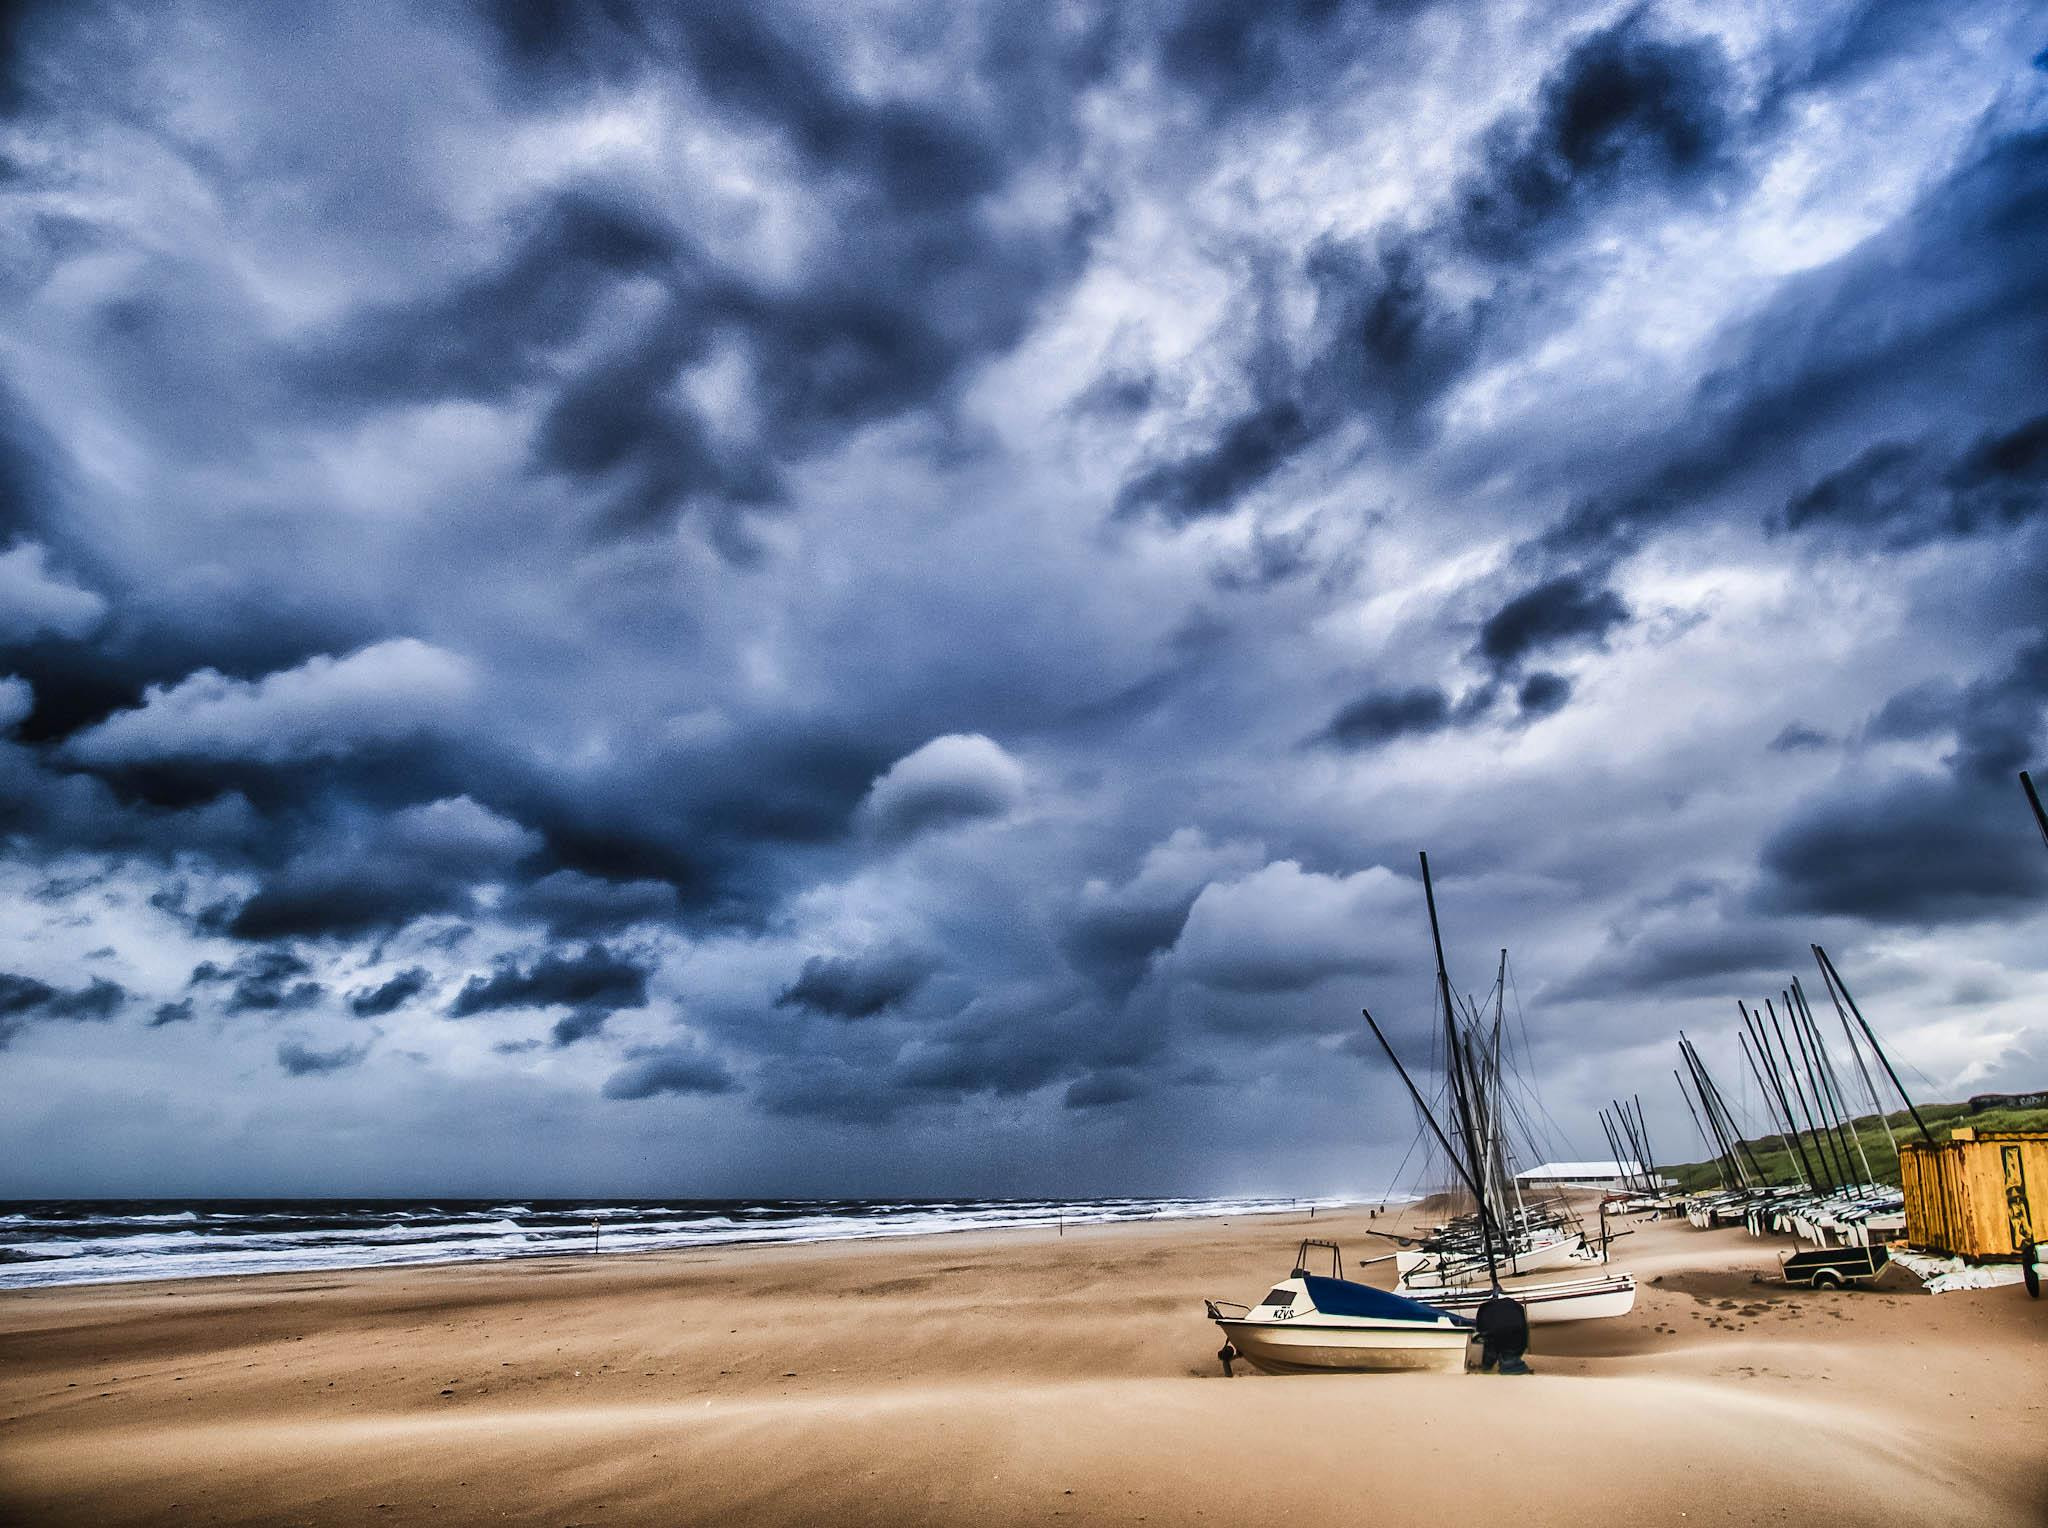 Photograph Dramatic storm by Hugh Jones on 500px